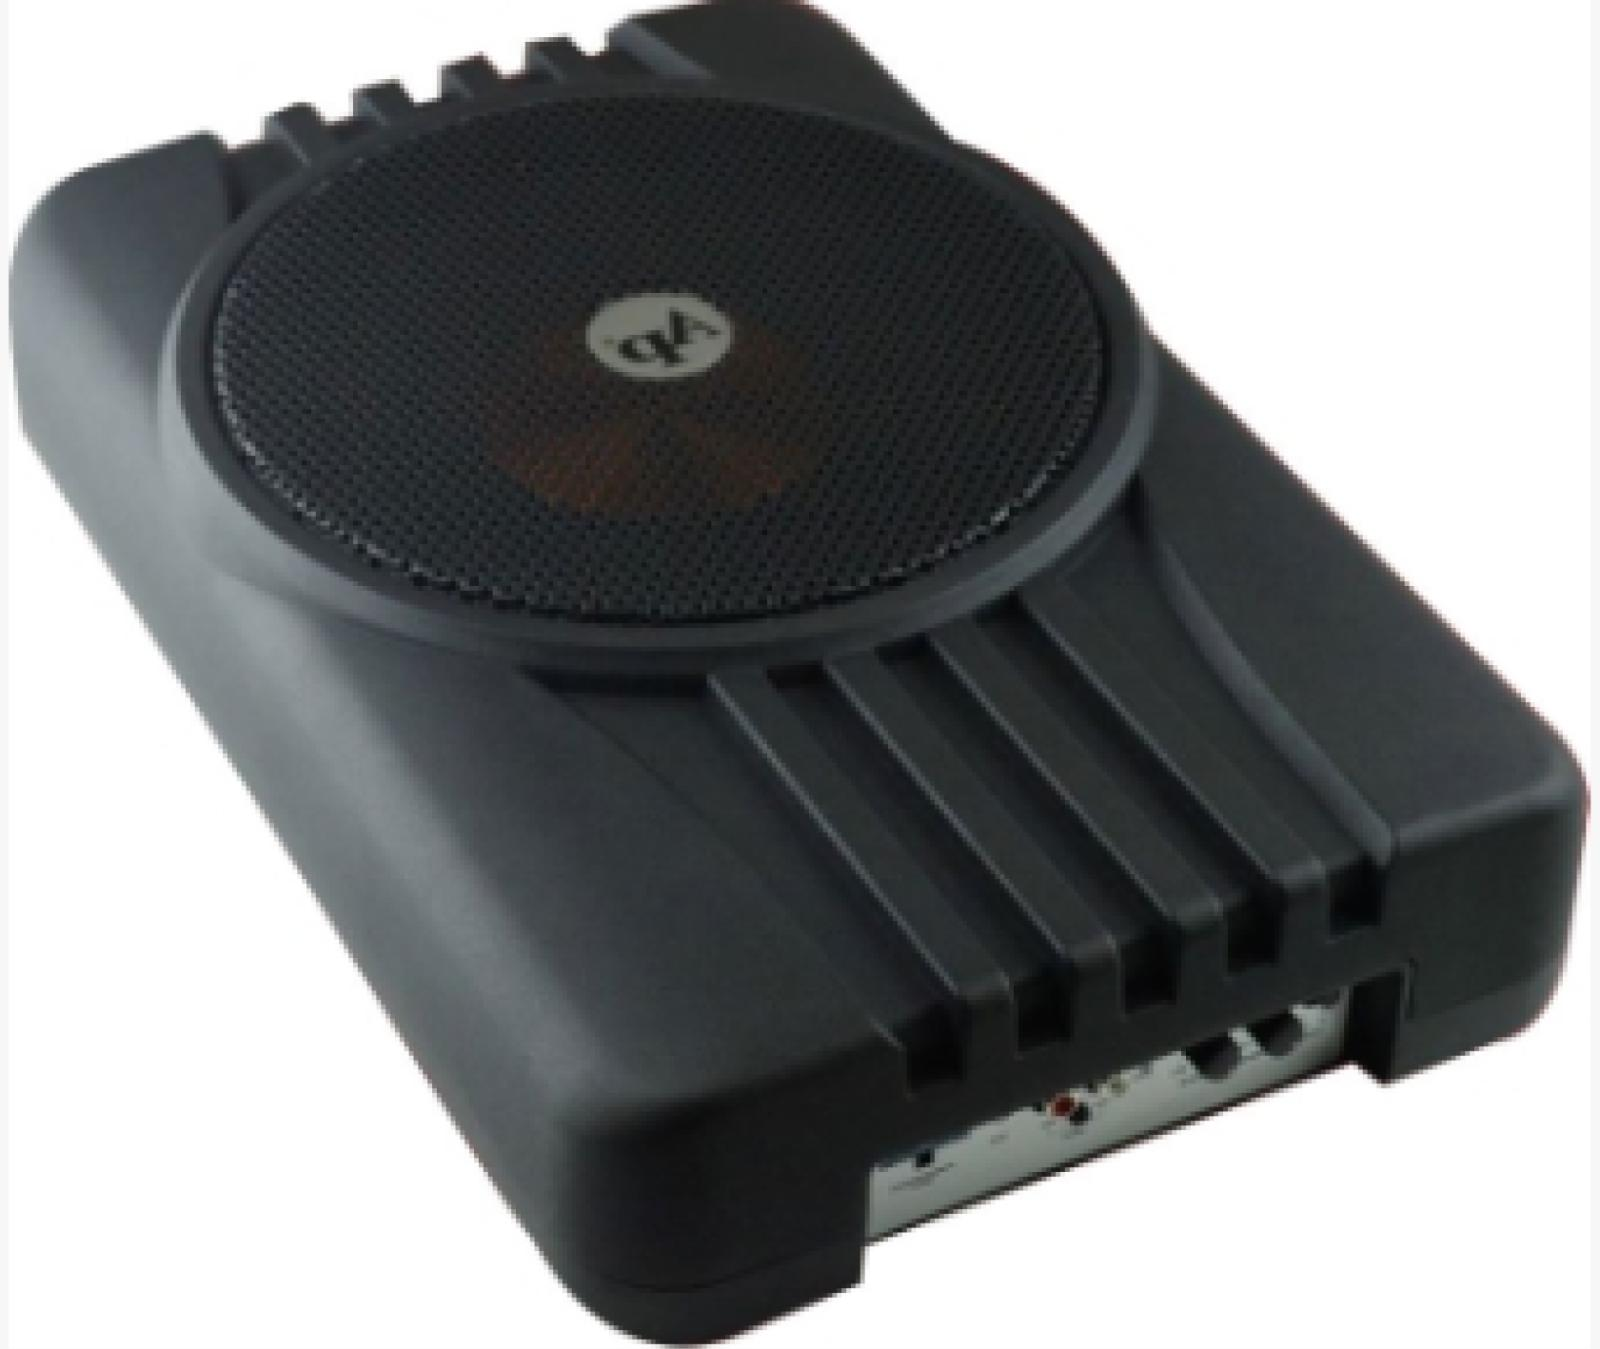 Audiopipe 10'' Compact Amplified Seat Subwoofer 300watts Power